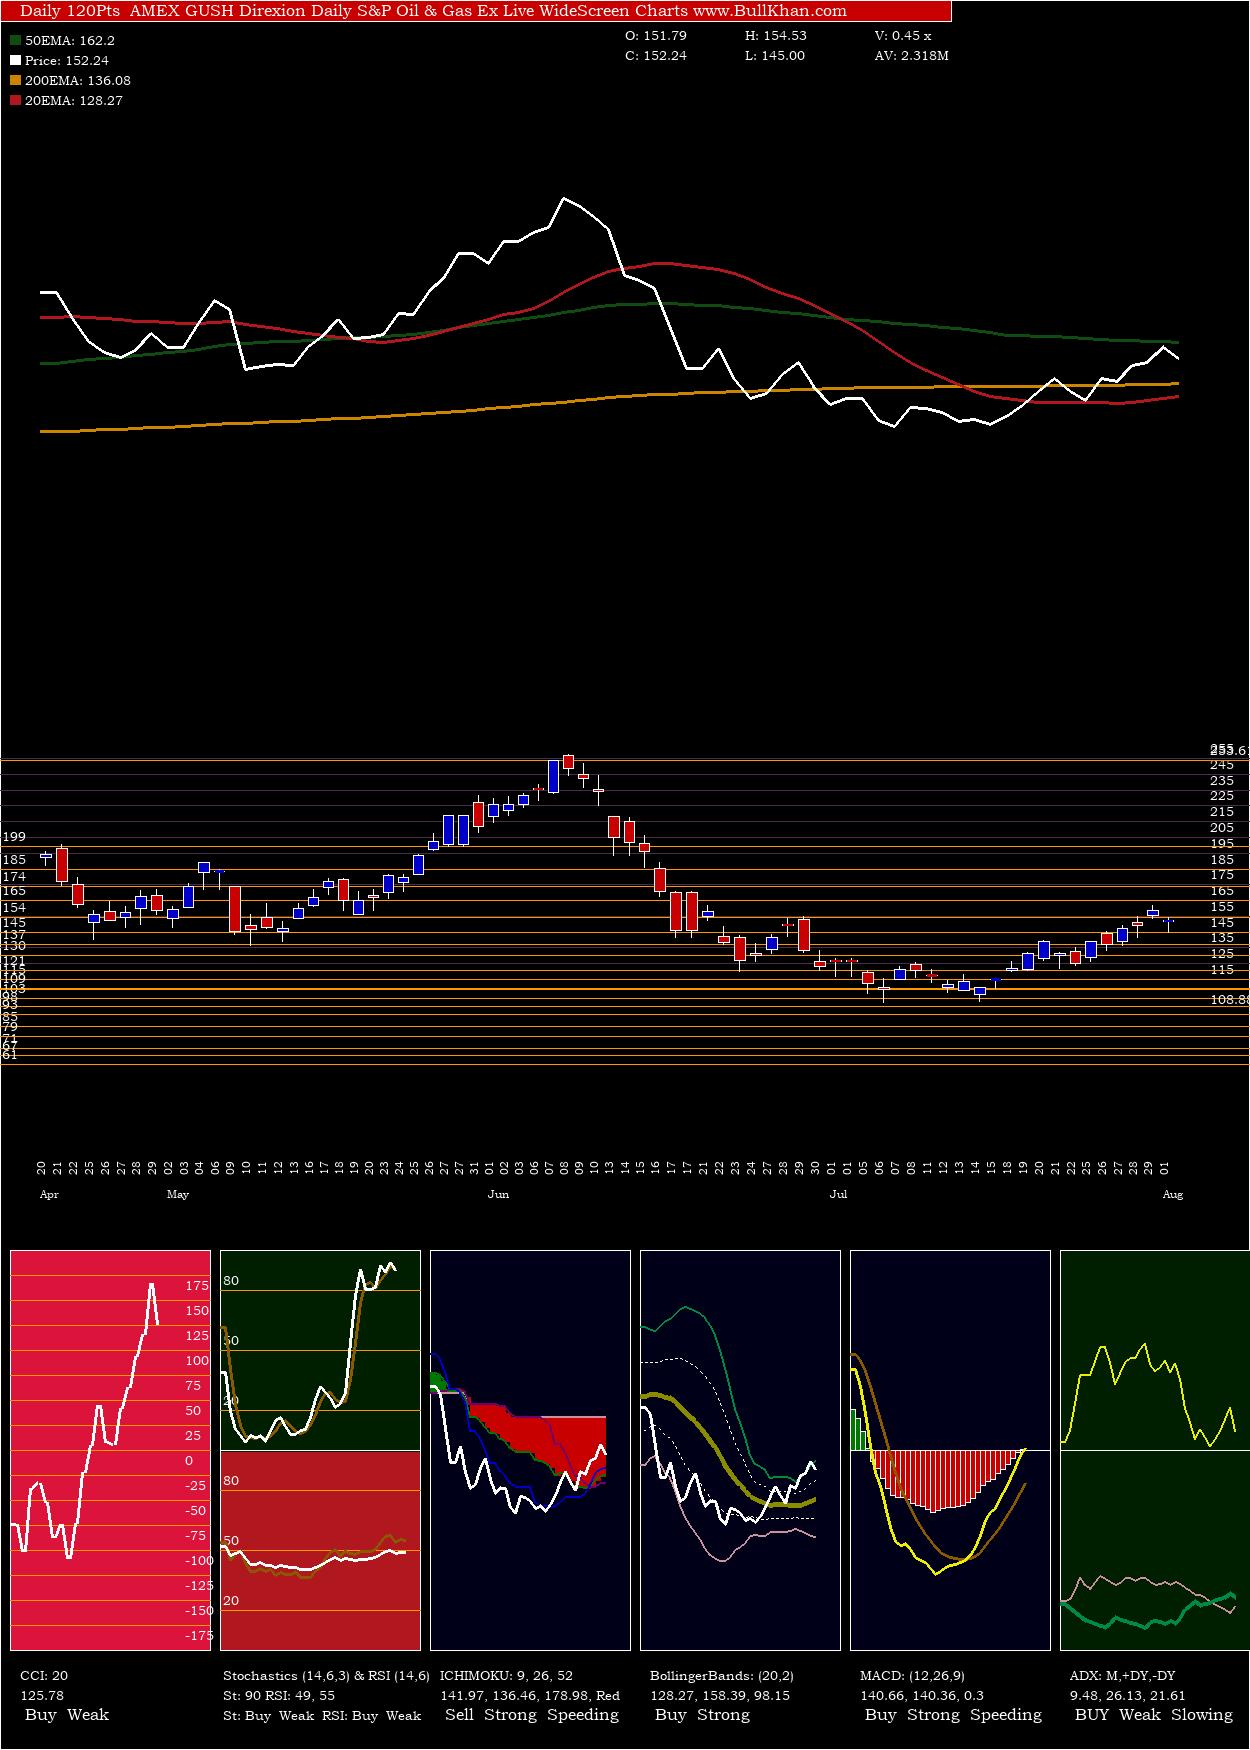 Direxion Daily S&P Oil & Gas Ex charts and indicators